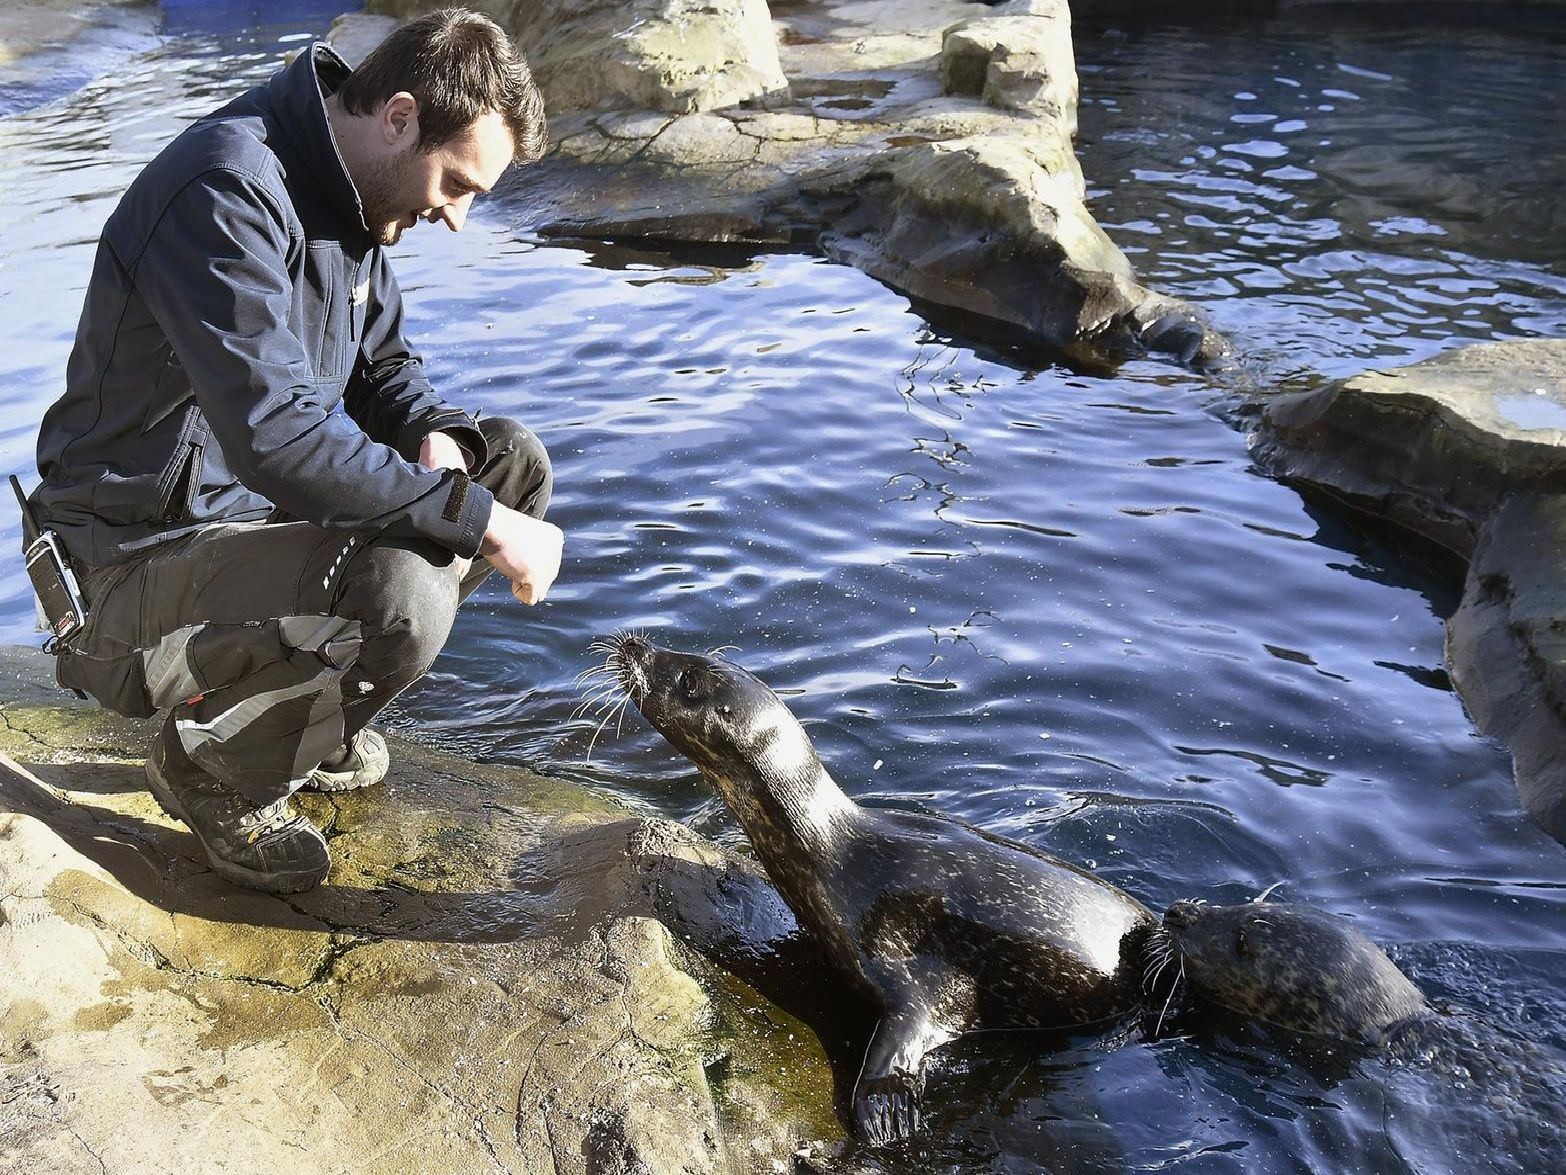 Aquarist Jordan Woodhead greets the seals